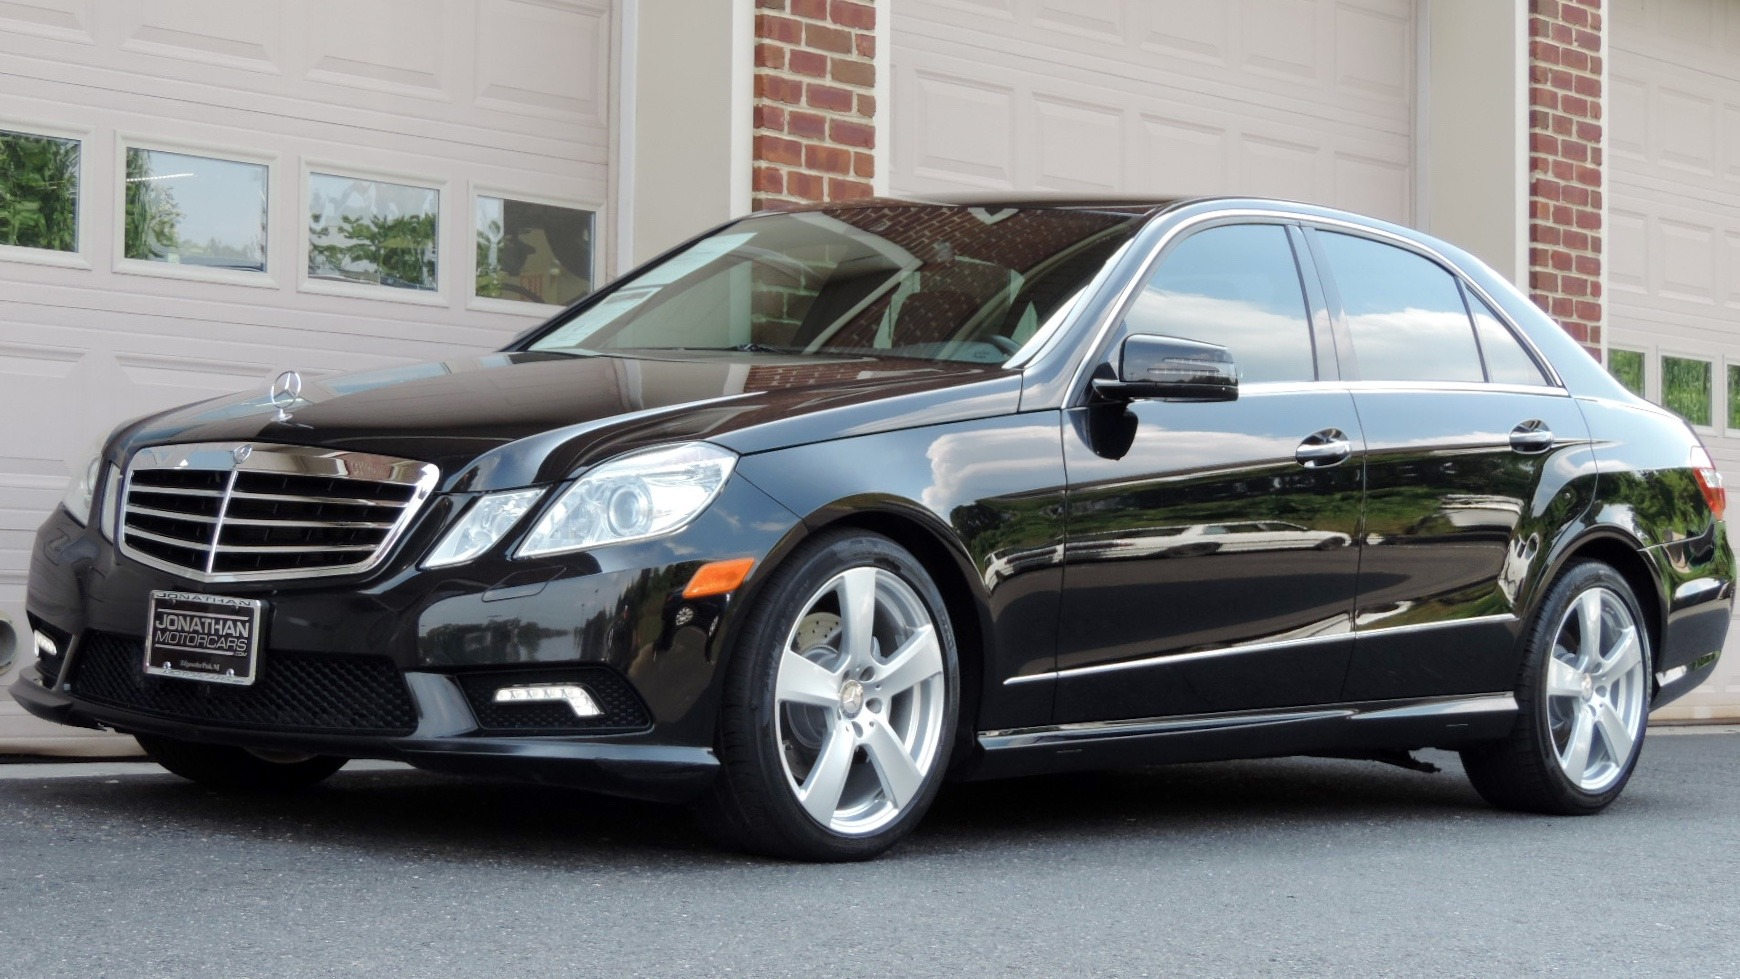 2011 mercedes benz e class e350 sedan 4matic stock 377183 for sale near edgewater park nj. Black Bedroom Furniture Sets. Home Design Ideas